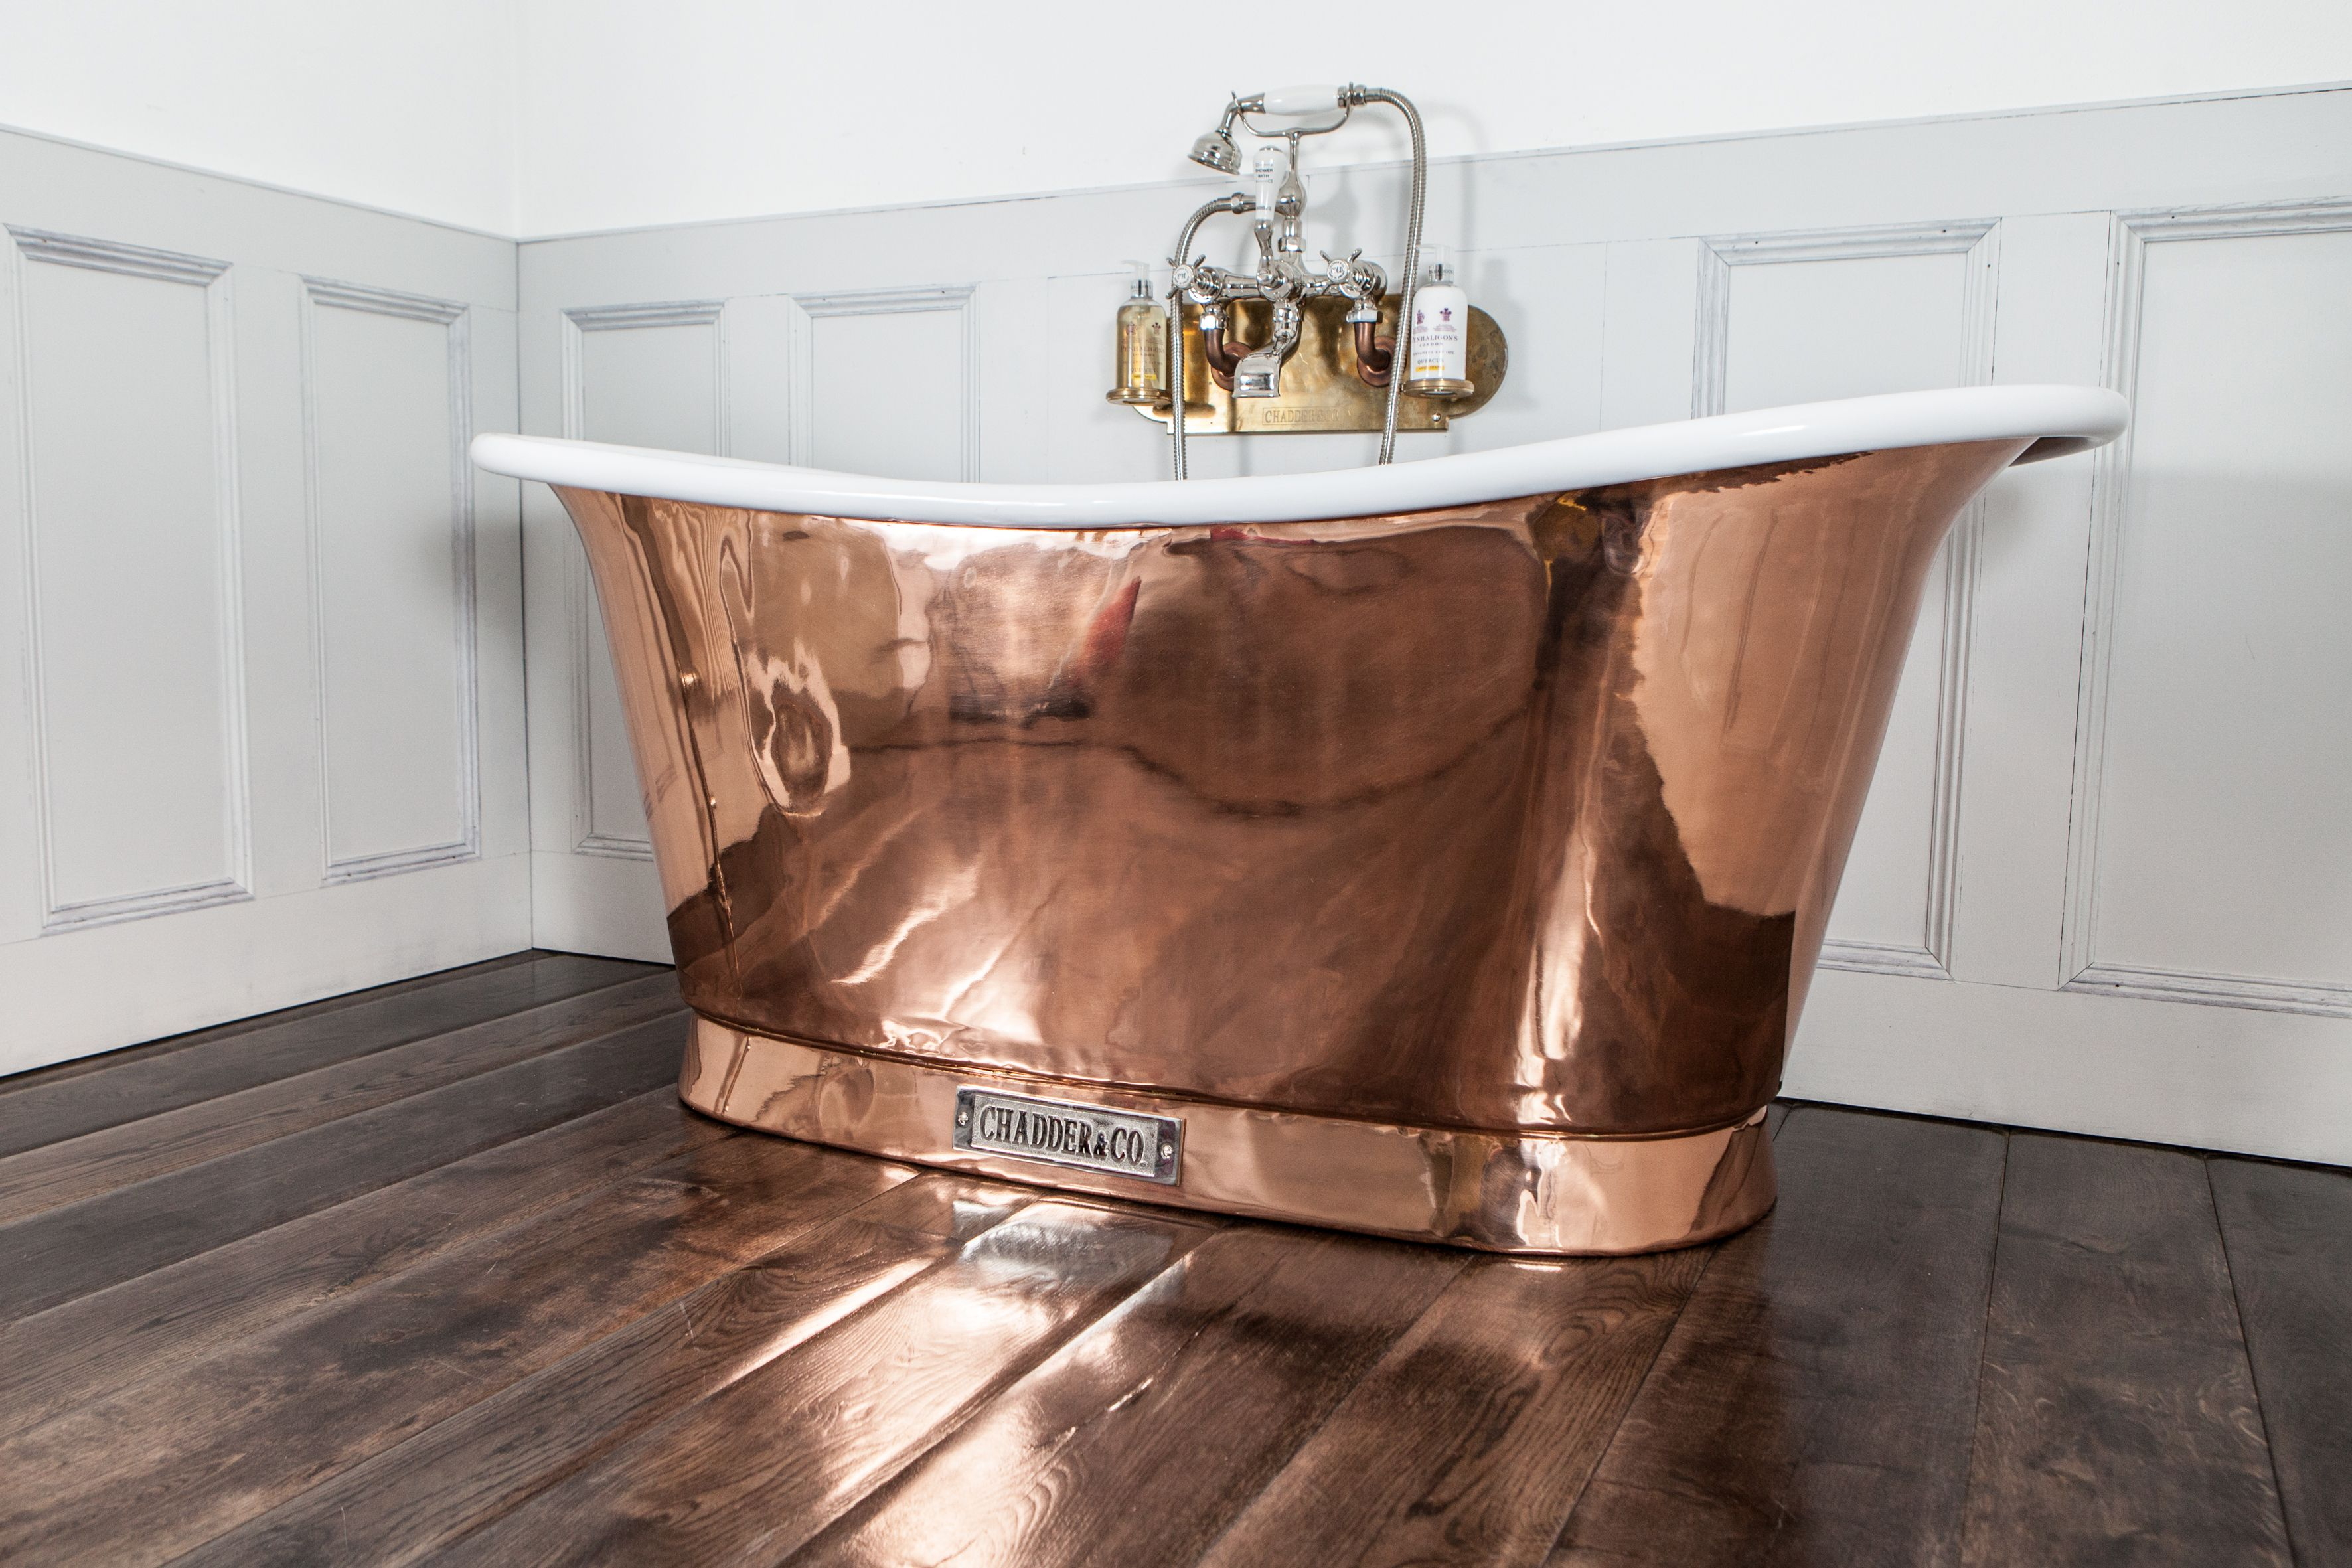 Chadder Royal Copper Bath, polished copper exterior with white ...